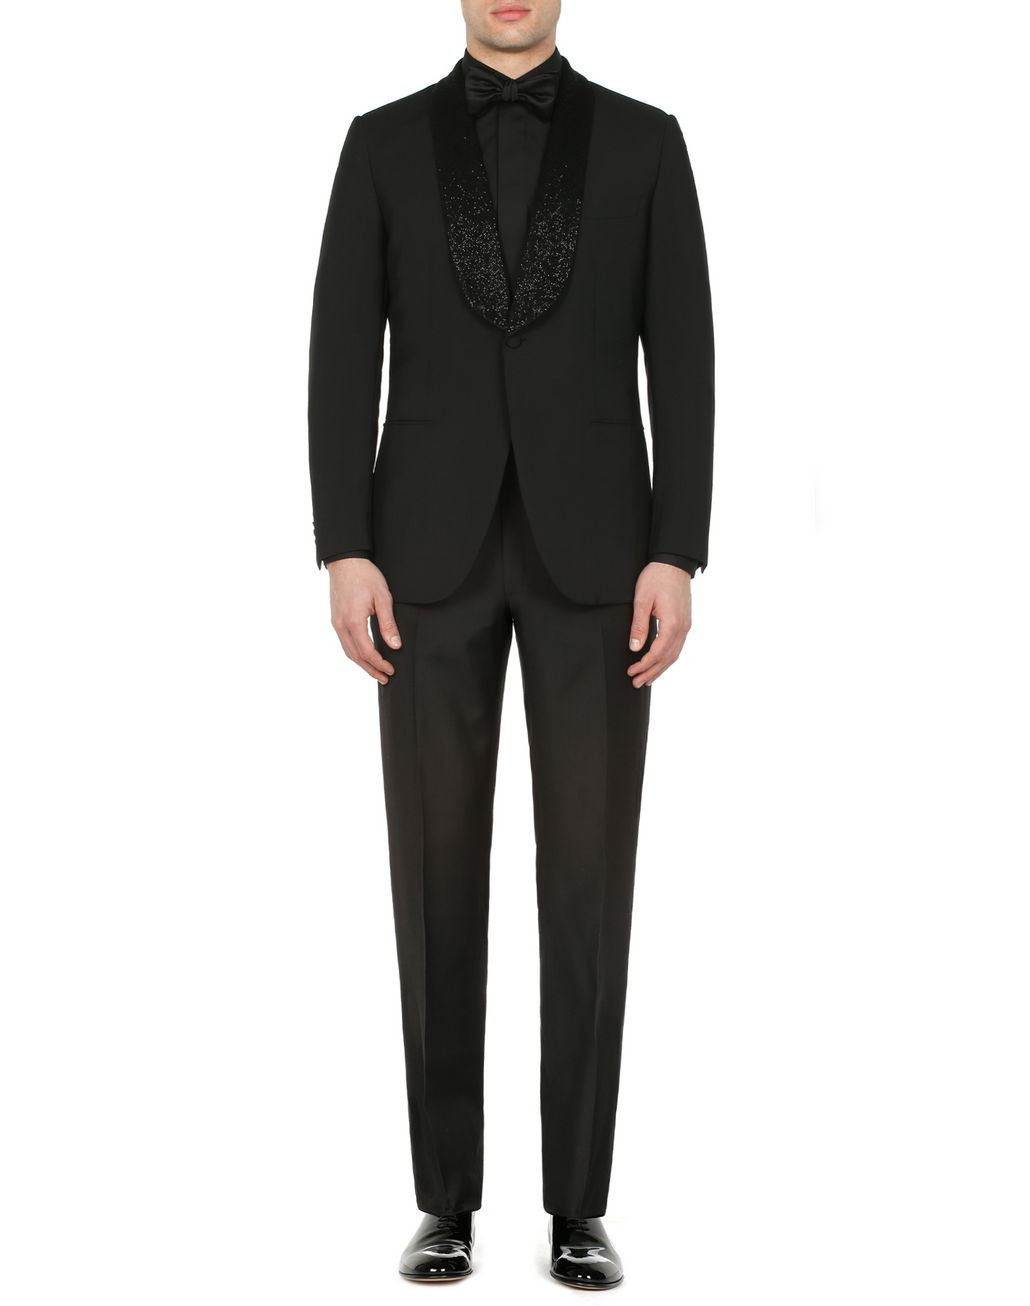 BRIONI Black Parioli Tuxedo with Black Pearl Embroidered Shawl Collar Tuxedo Man r